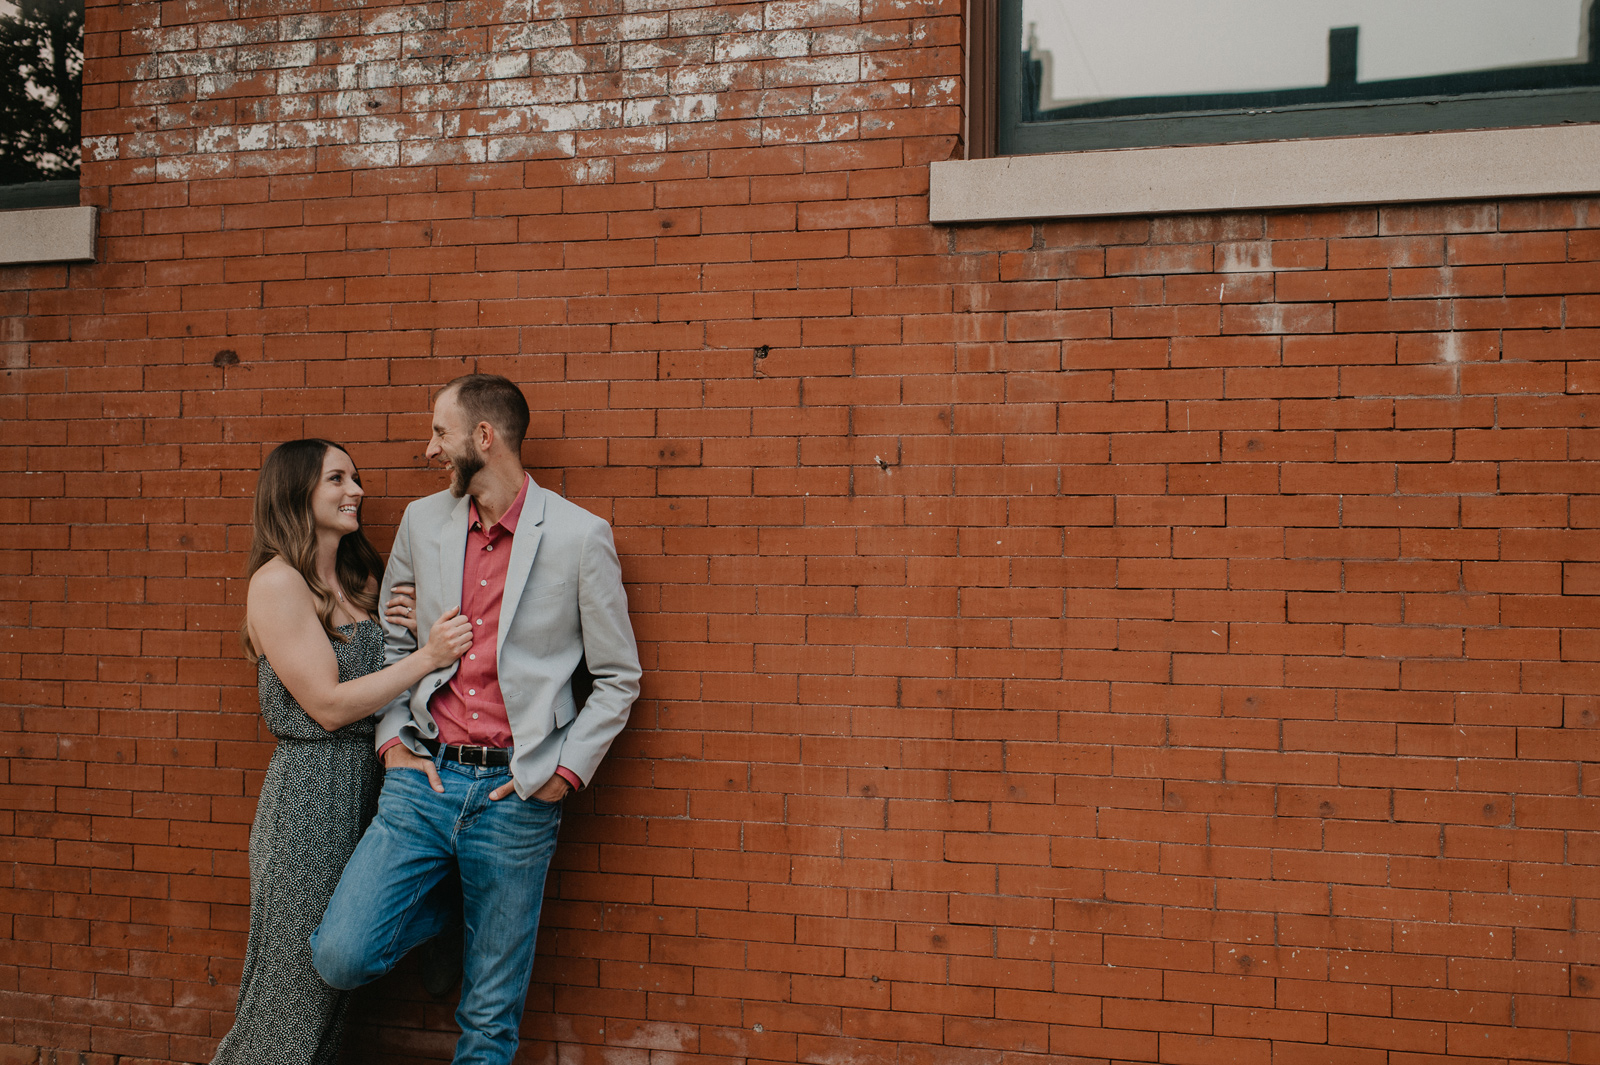 Paul and Kyla's Des Moines Iowa Engagement Session